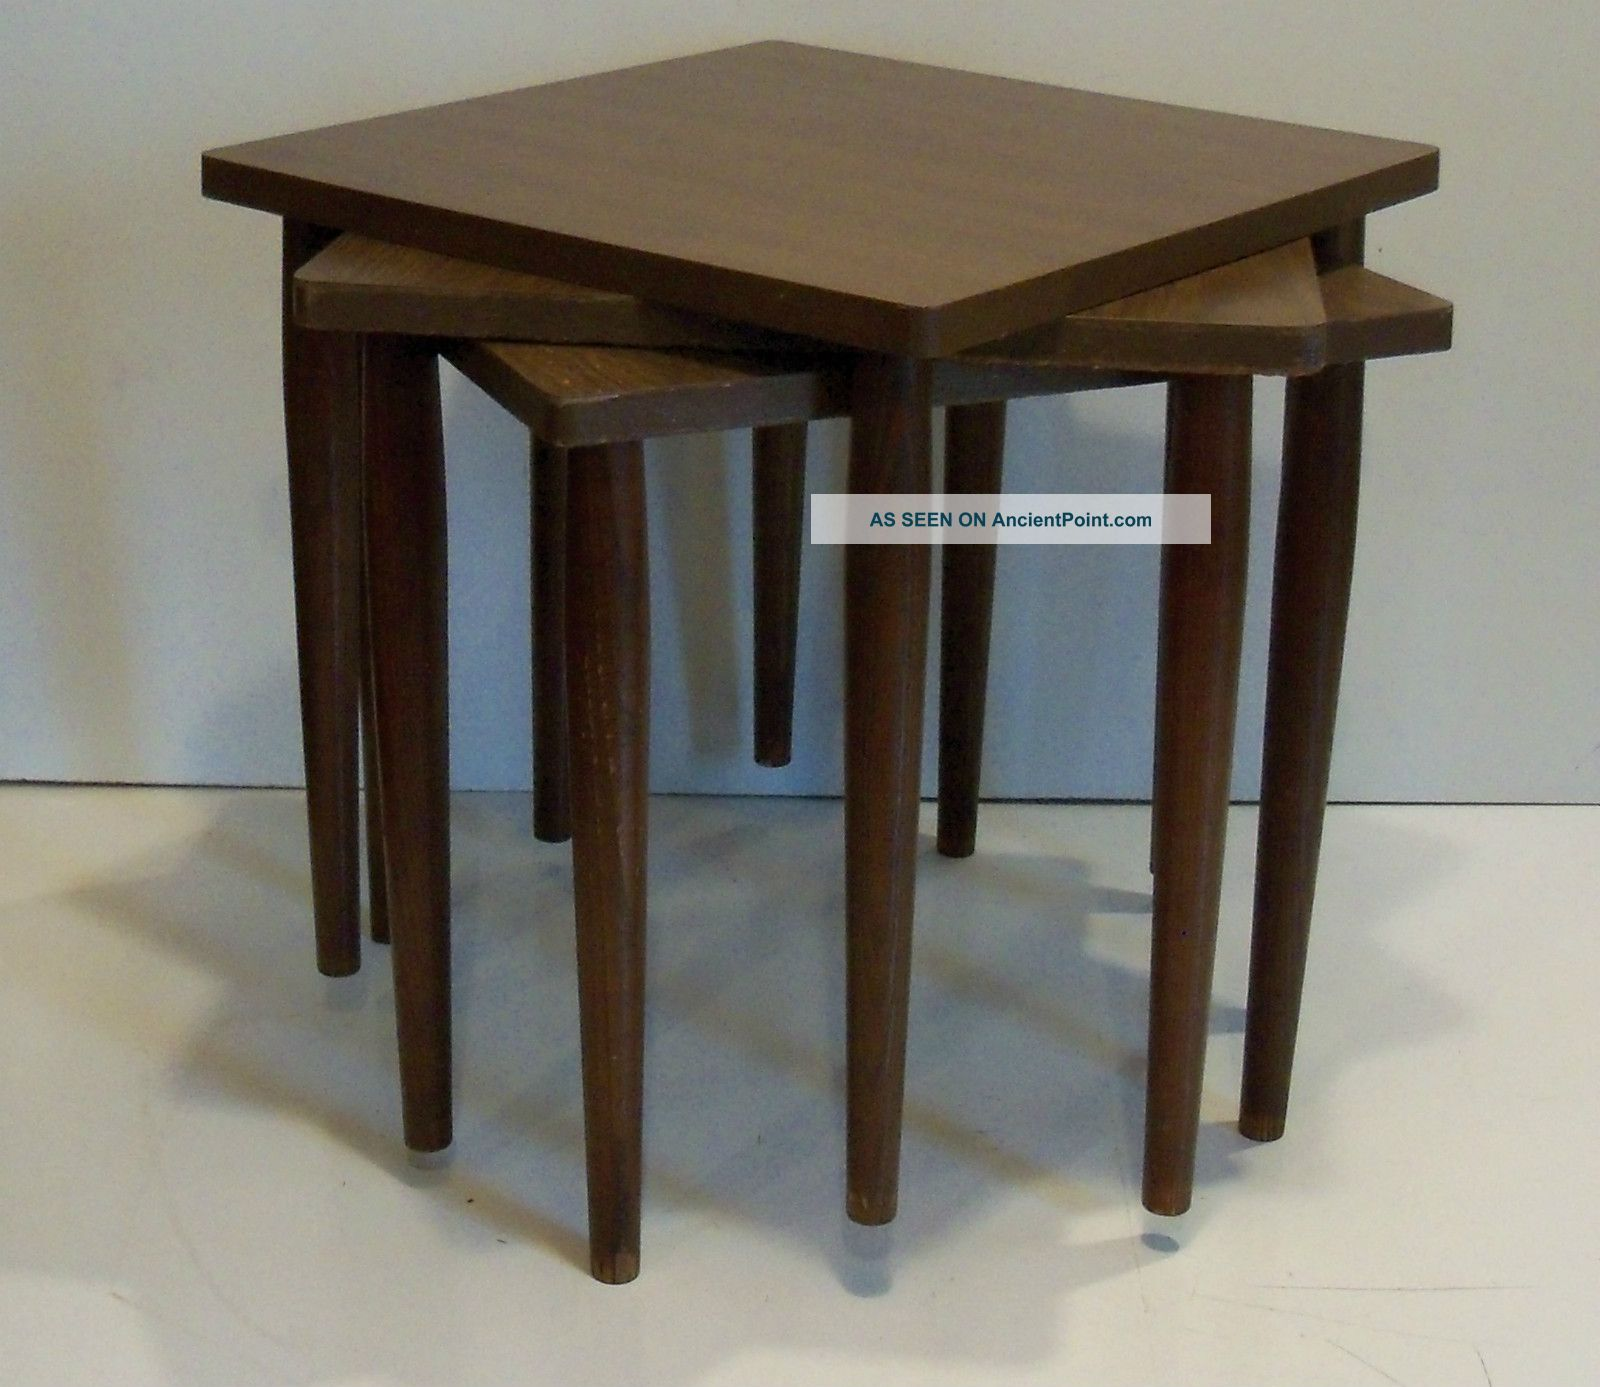 Vintage Eames Mid Century Danish Modern Stack Tables Stands Skinny Pencil Legs Post-1950 photo